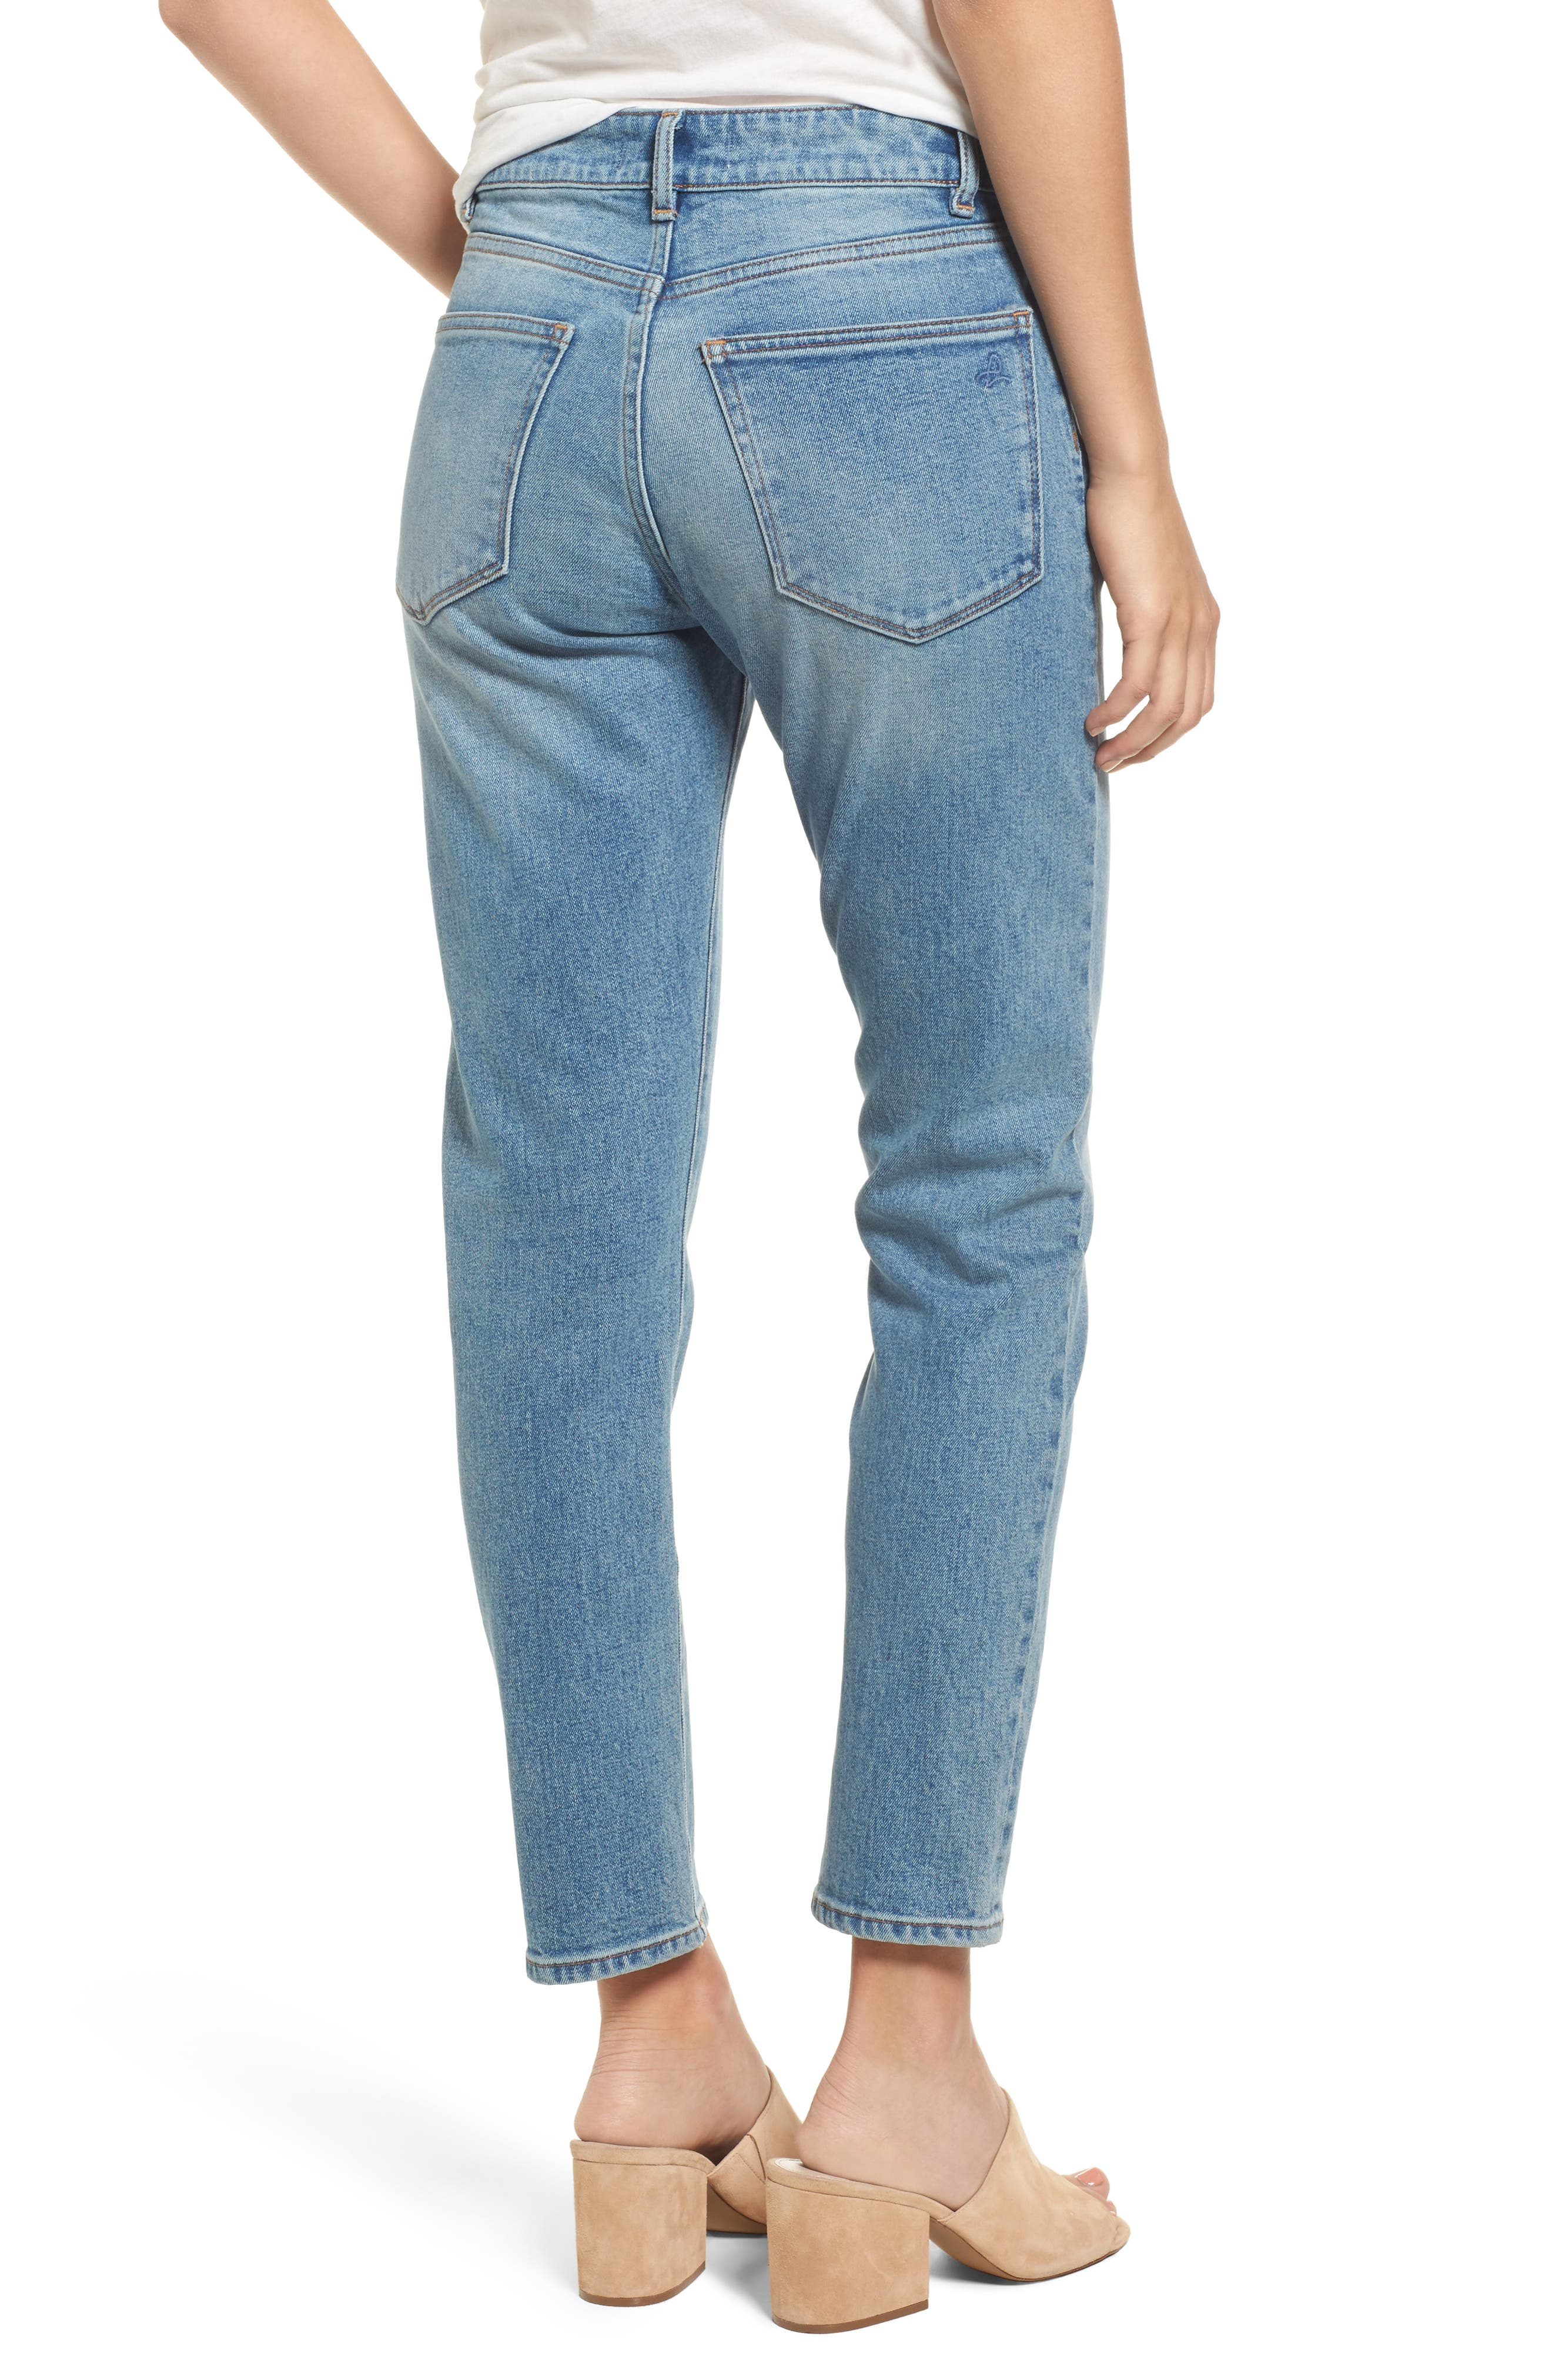 Bella High Waist Ankle Skinny Jeans,                             Alternate thumbnail 2, color,                             430